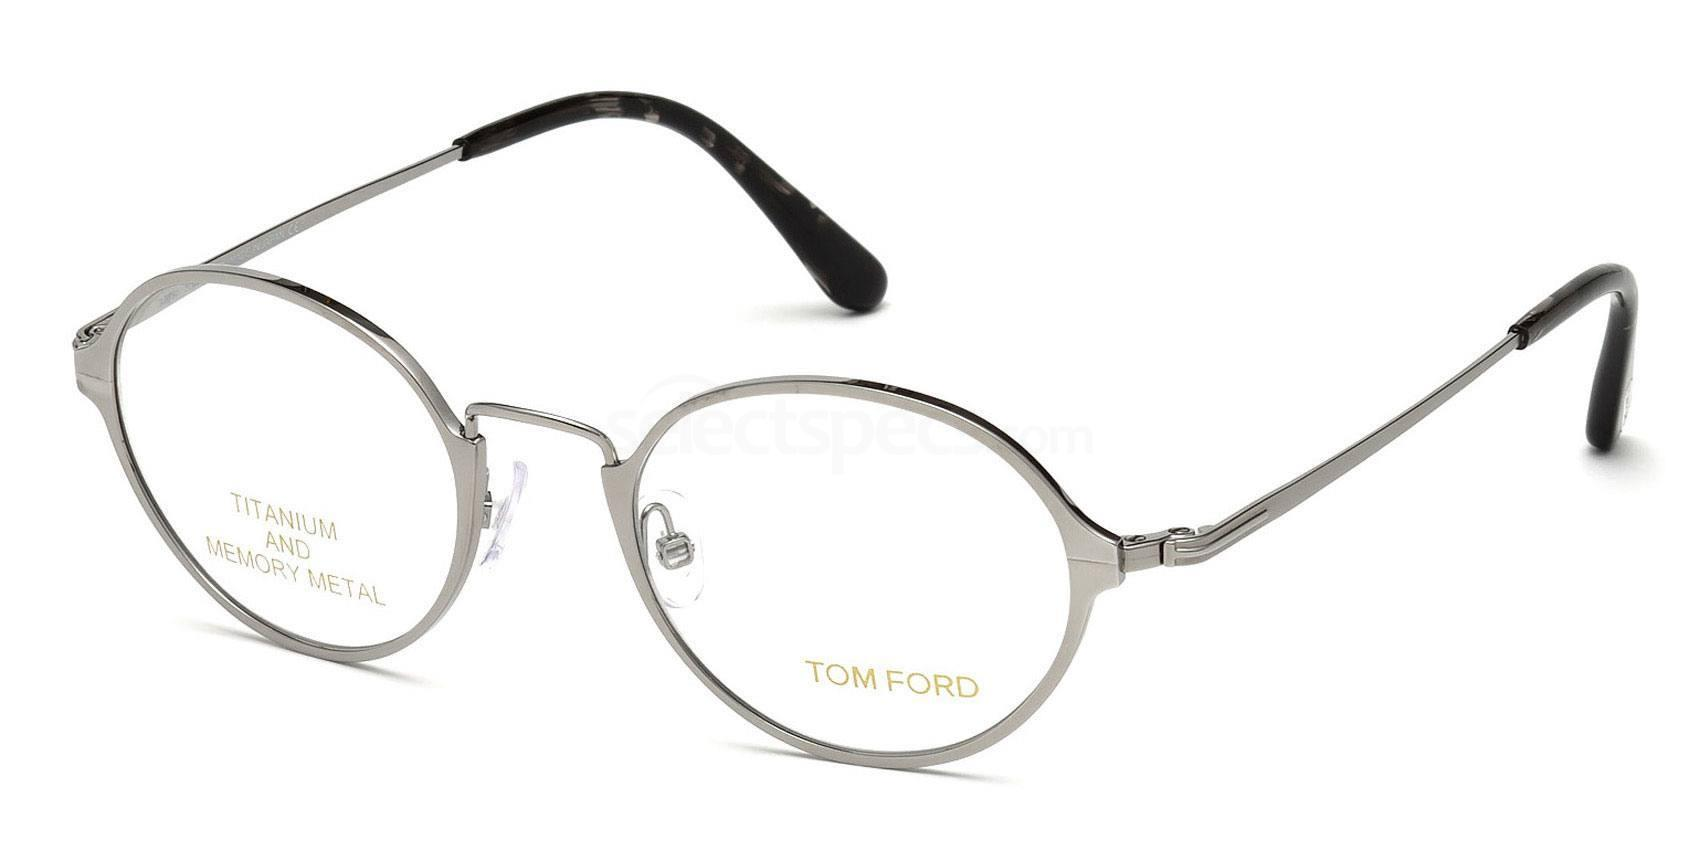 Tom Ford FT5350 glasses